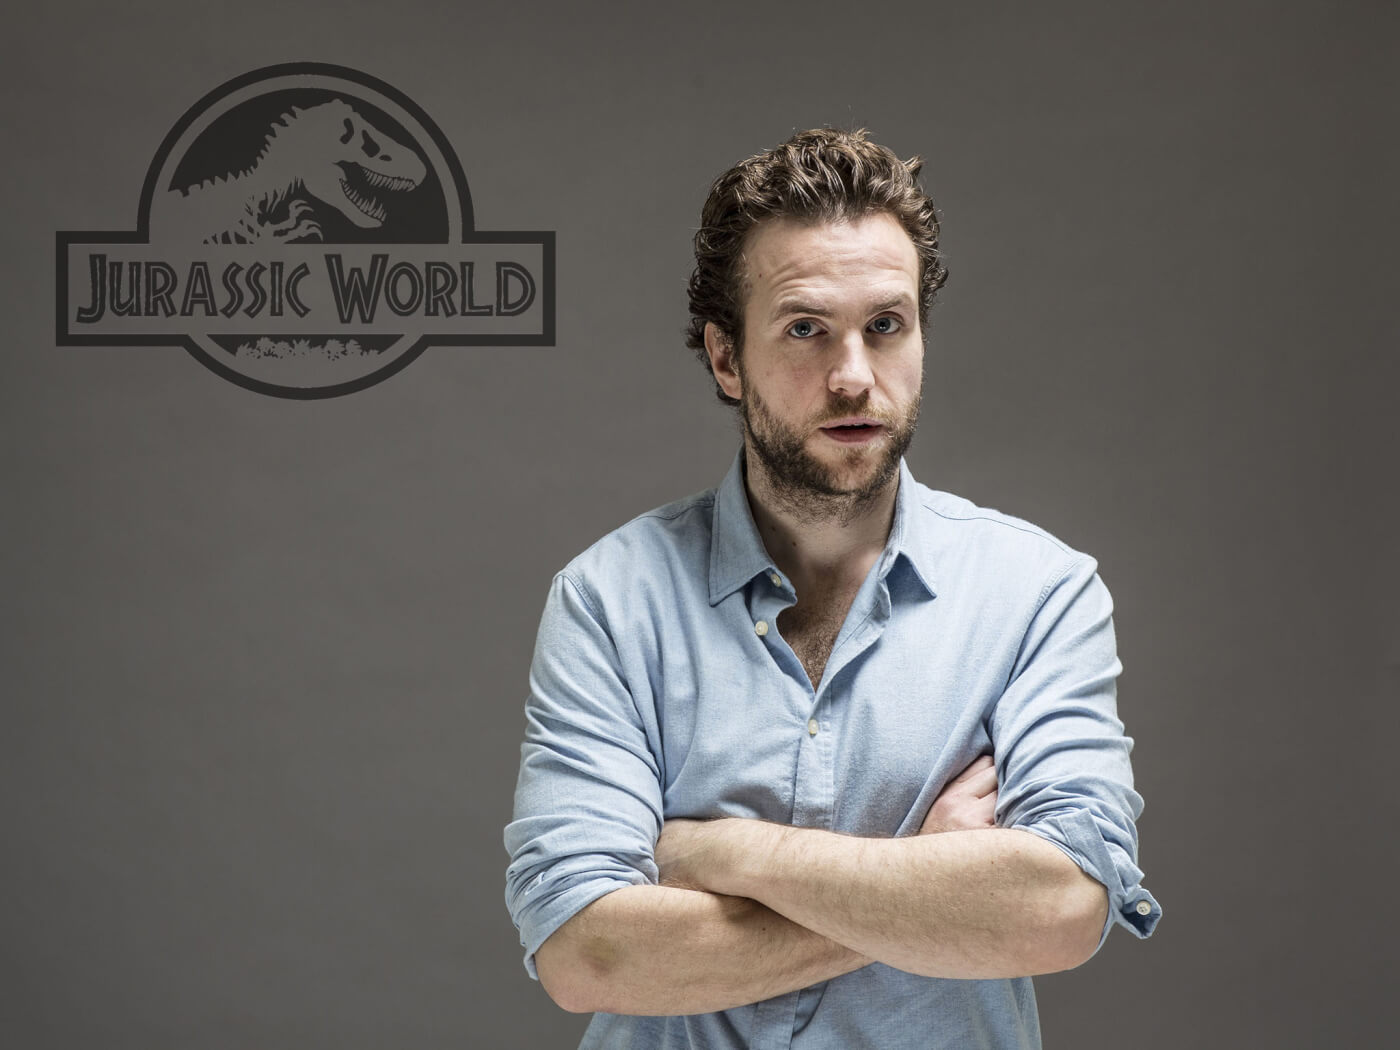 Rafe Spall navigating busy schedule including the Jurassic World Sequel